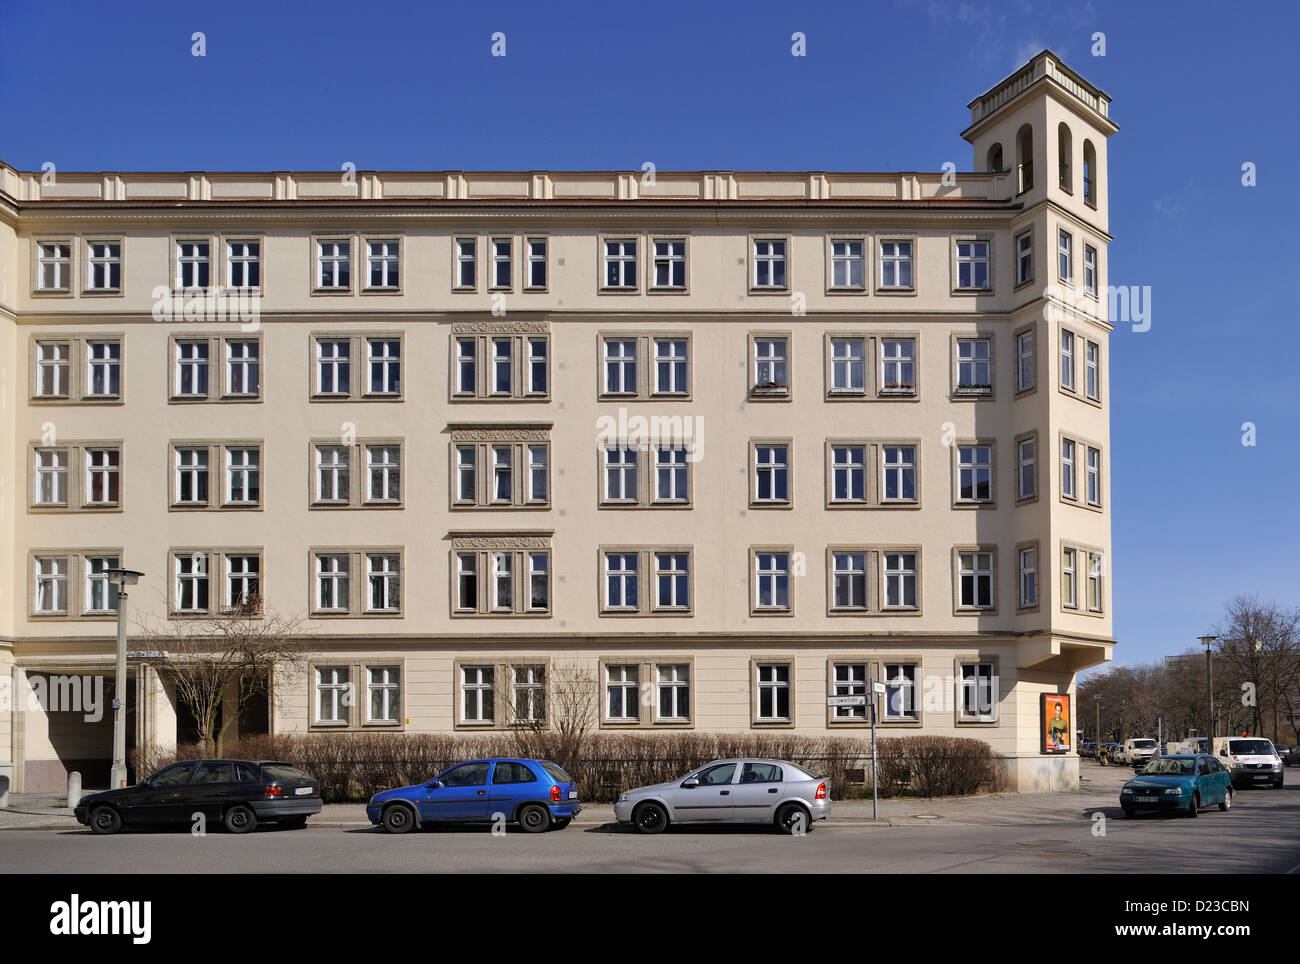 Berlin, Germany, 50s GDR housing in sugar baker style - Stock Image